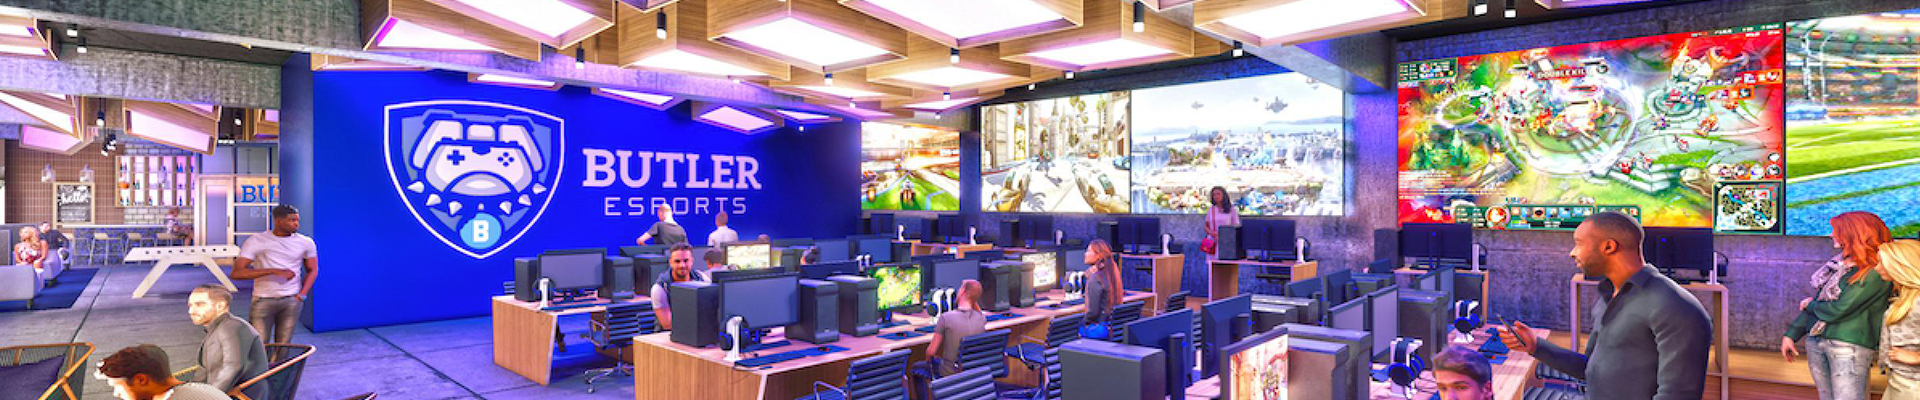 Concept art for Butler's esports facility